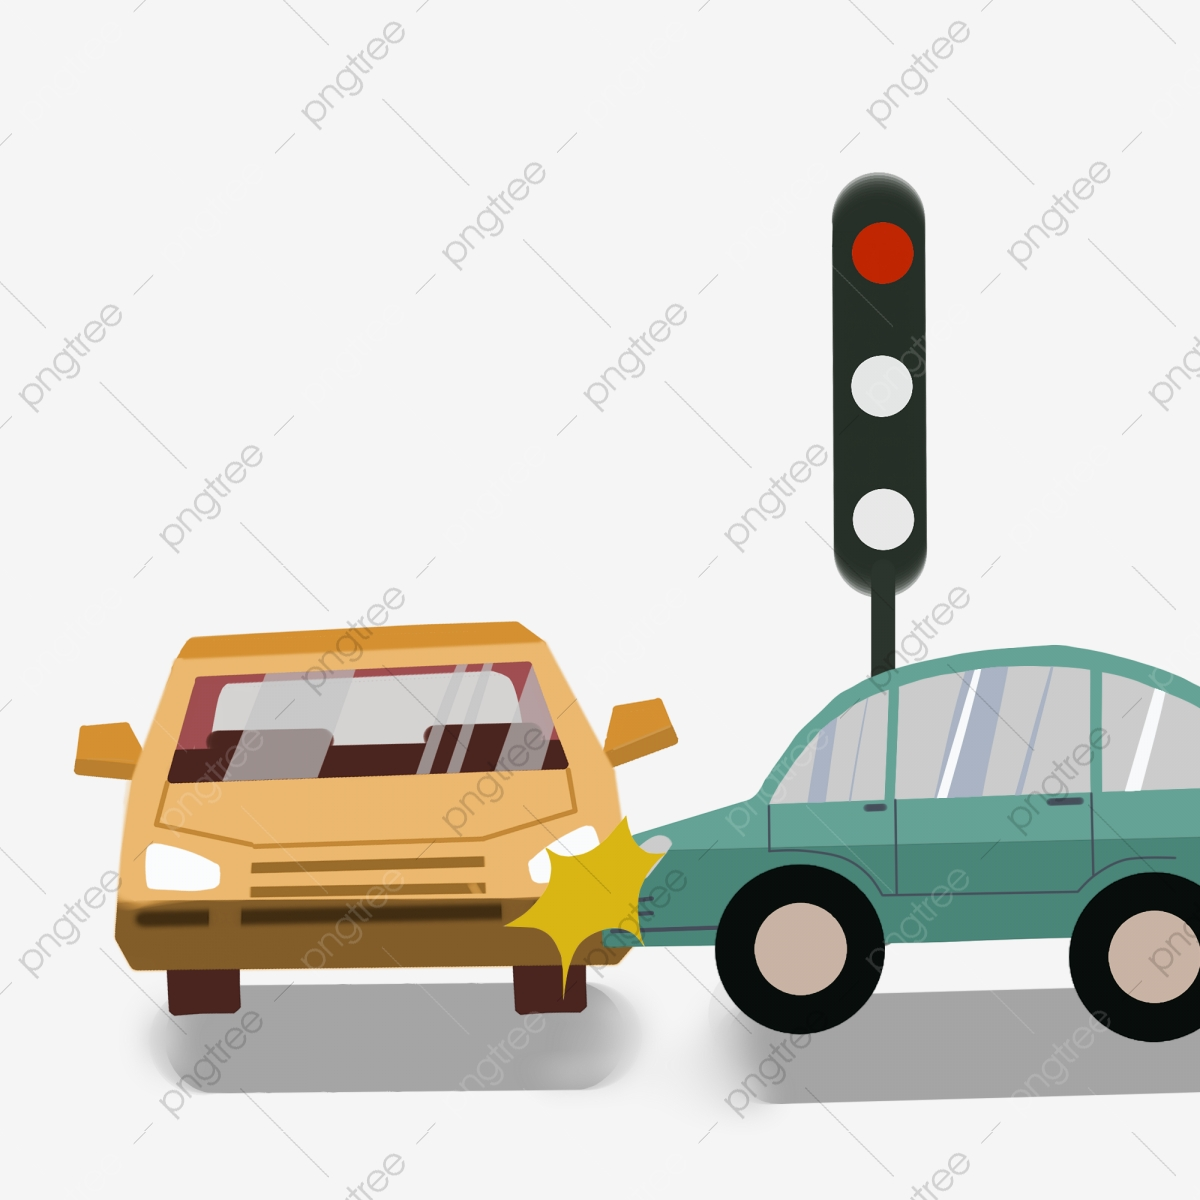 Accident Stock Illustrations – 90,605 Accident Stock Illustrations, Vectors  & Clipart - Dreamstime